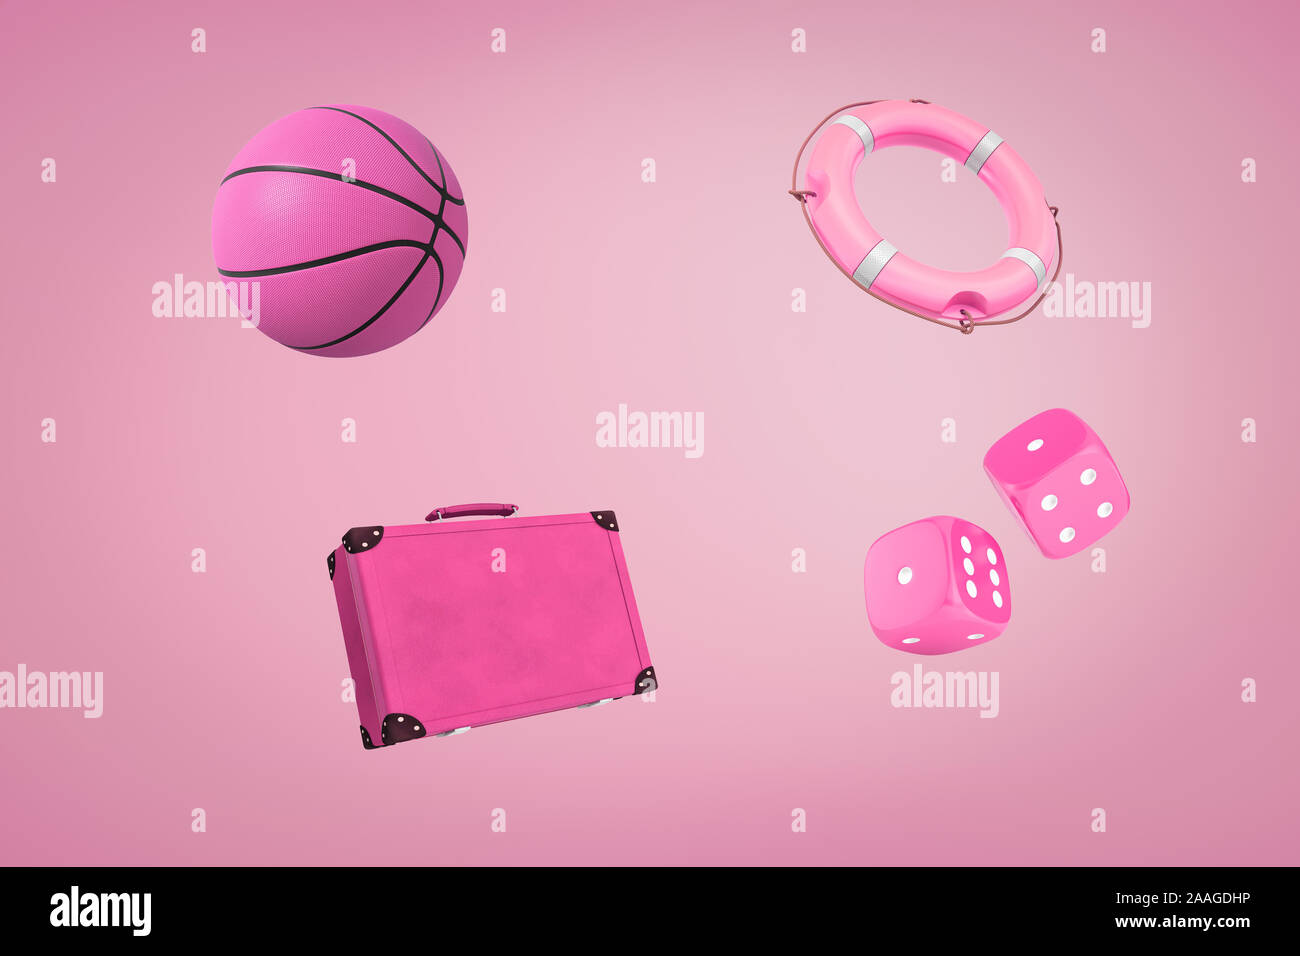 3d Rendering Of Pink Retro Suitcase Basketball Ball Casino Dice And Boat Lifebuoy On Pink Background Digital Art Objects And Materials Travel And Stock Photo Alamy